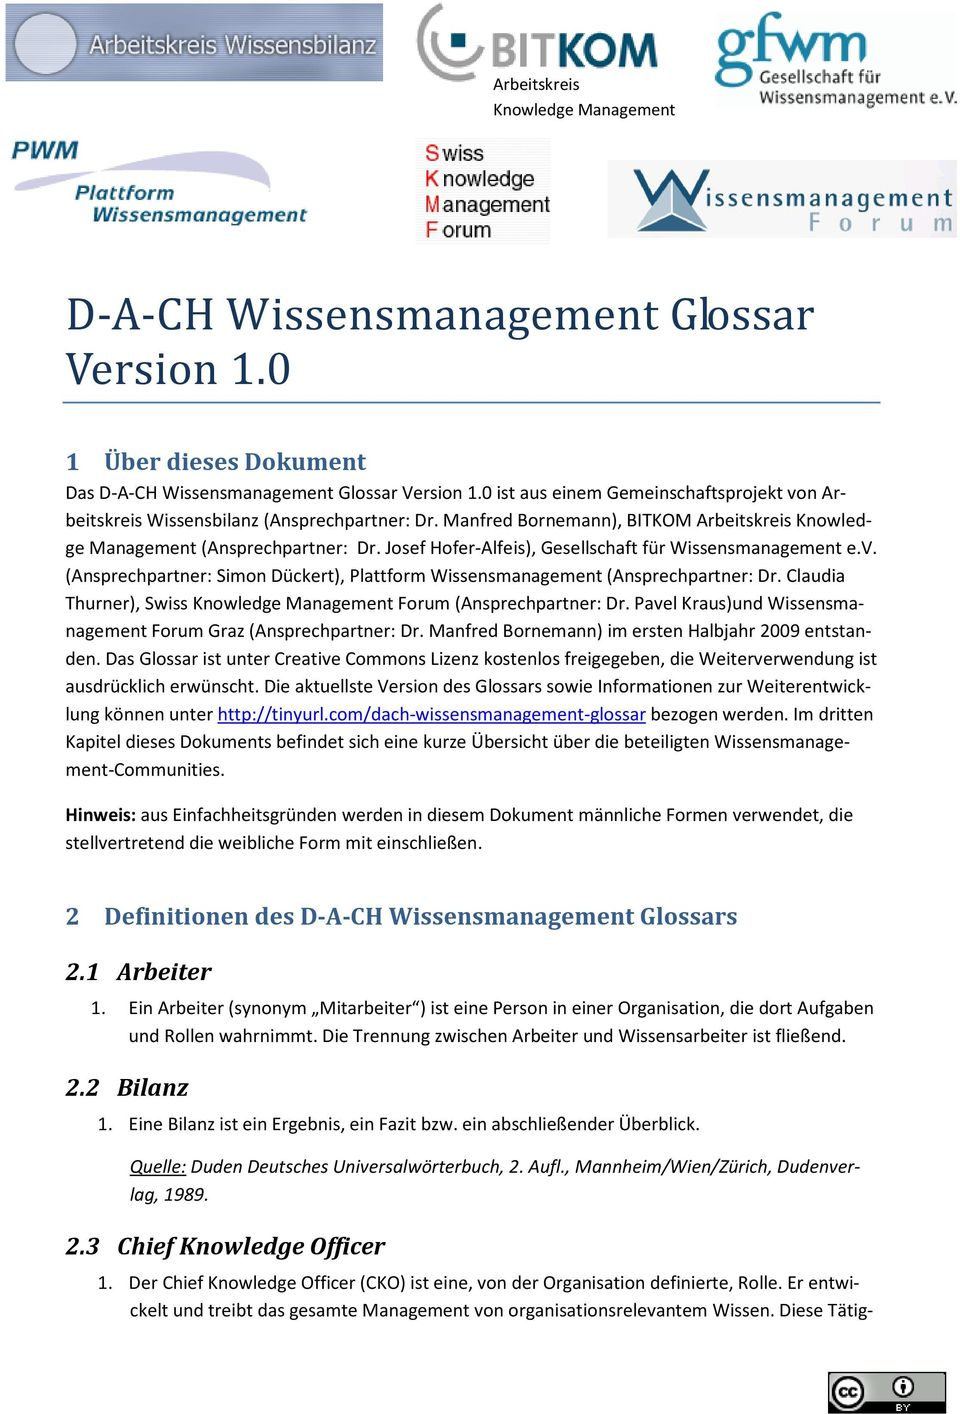 Josef Hofer-Alfeis), Gesellschaft für Wissensmanagement e.v. (Ansprechpartner: Simon Dückert), Plattform Wissensmanagement (Ansprechpartner: Dr.